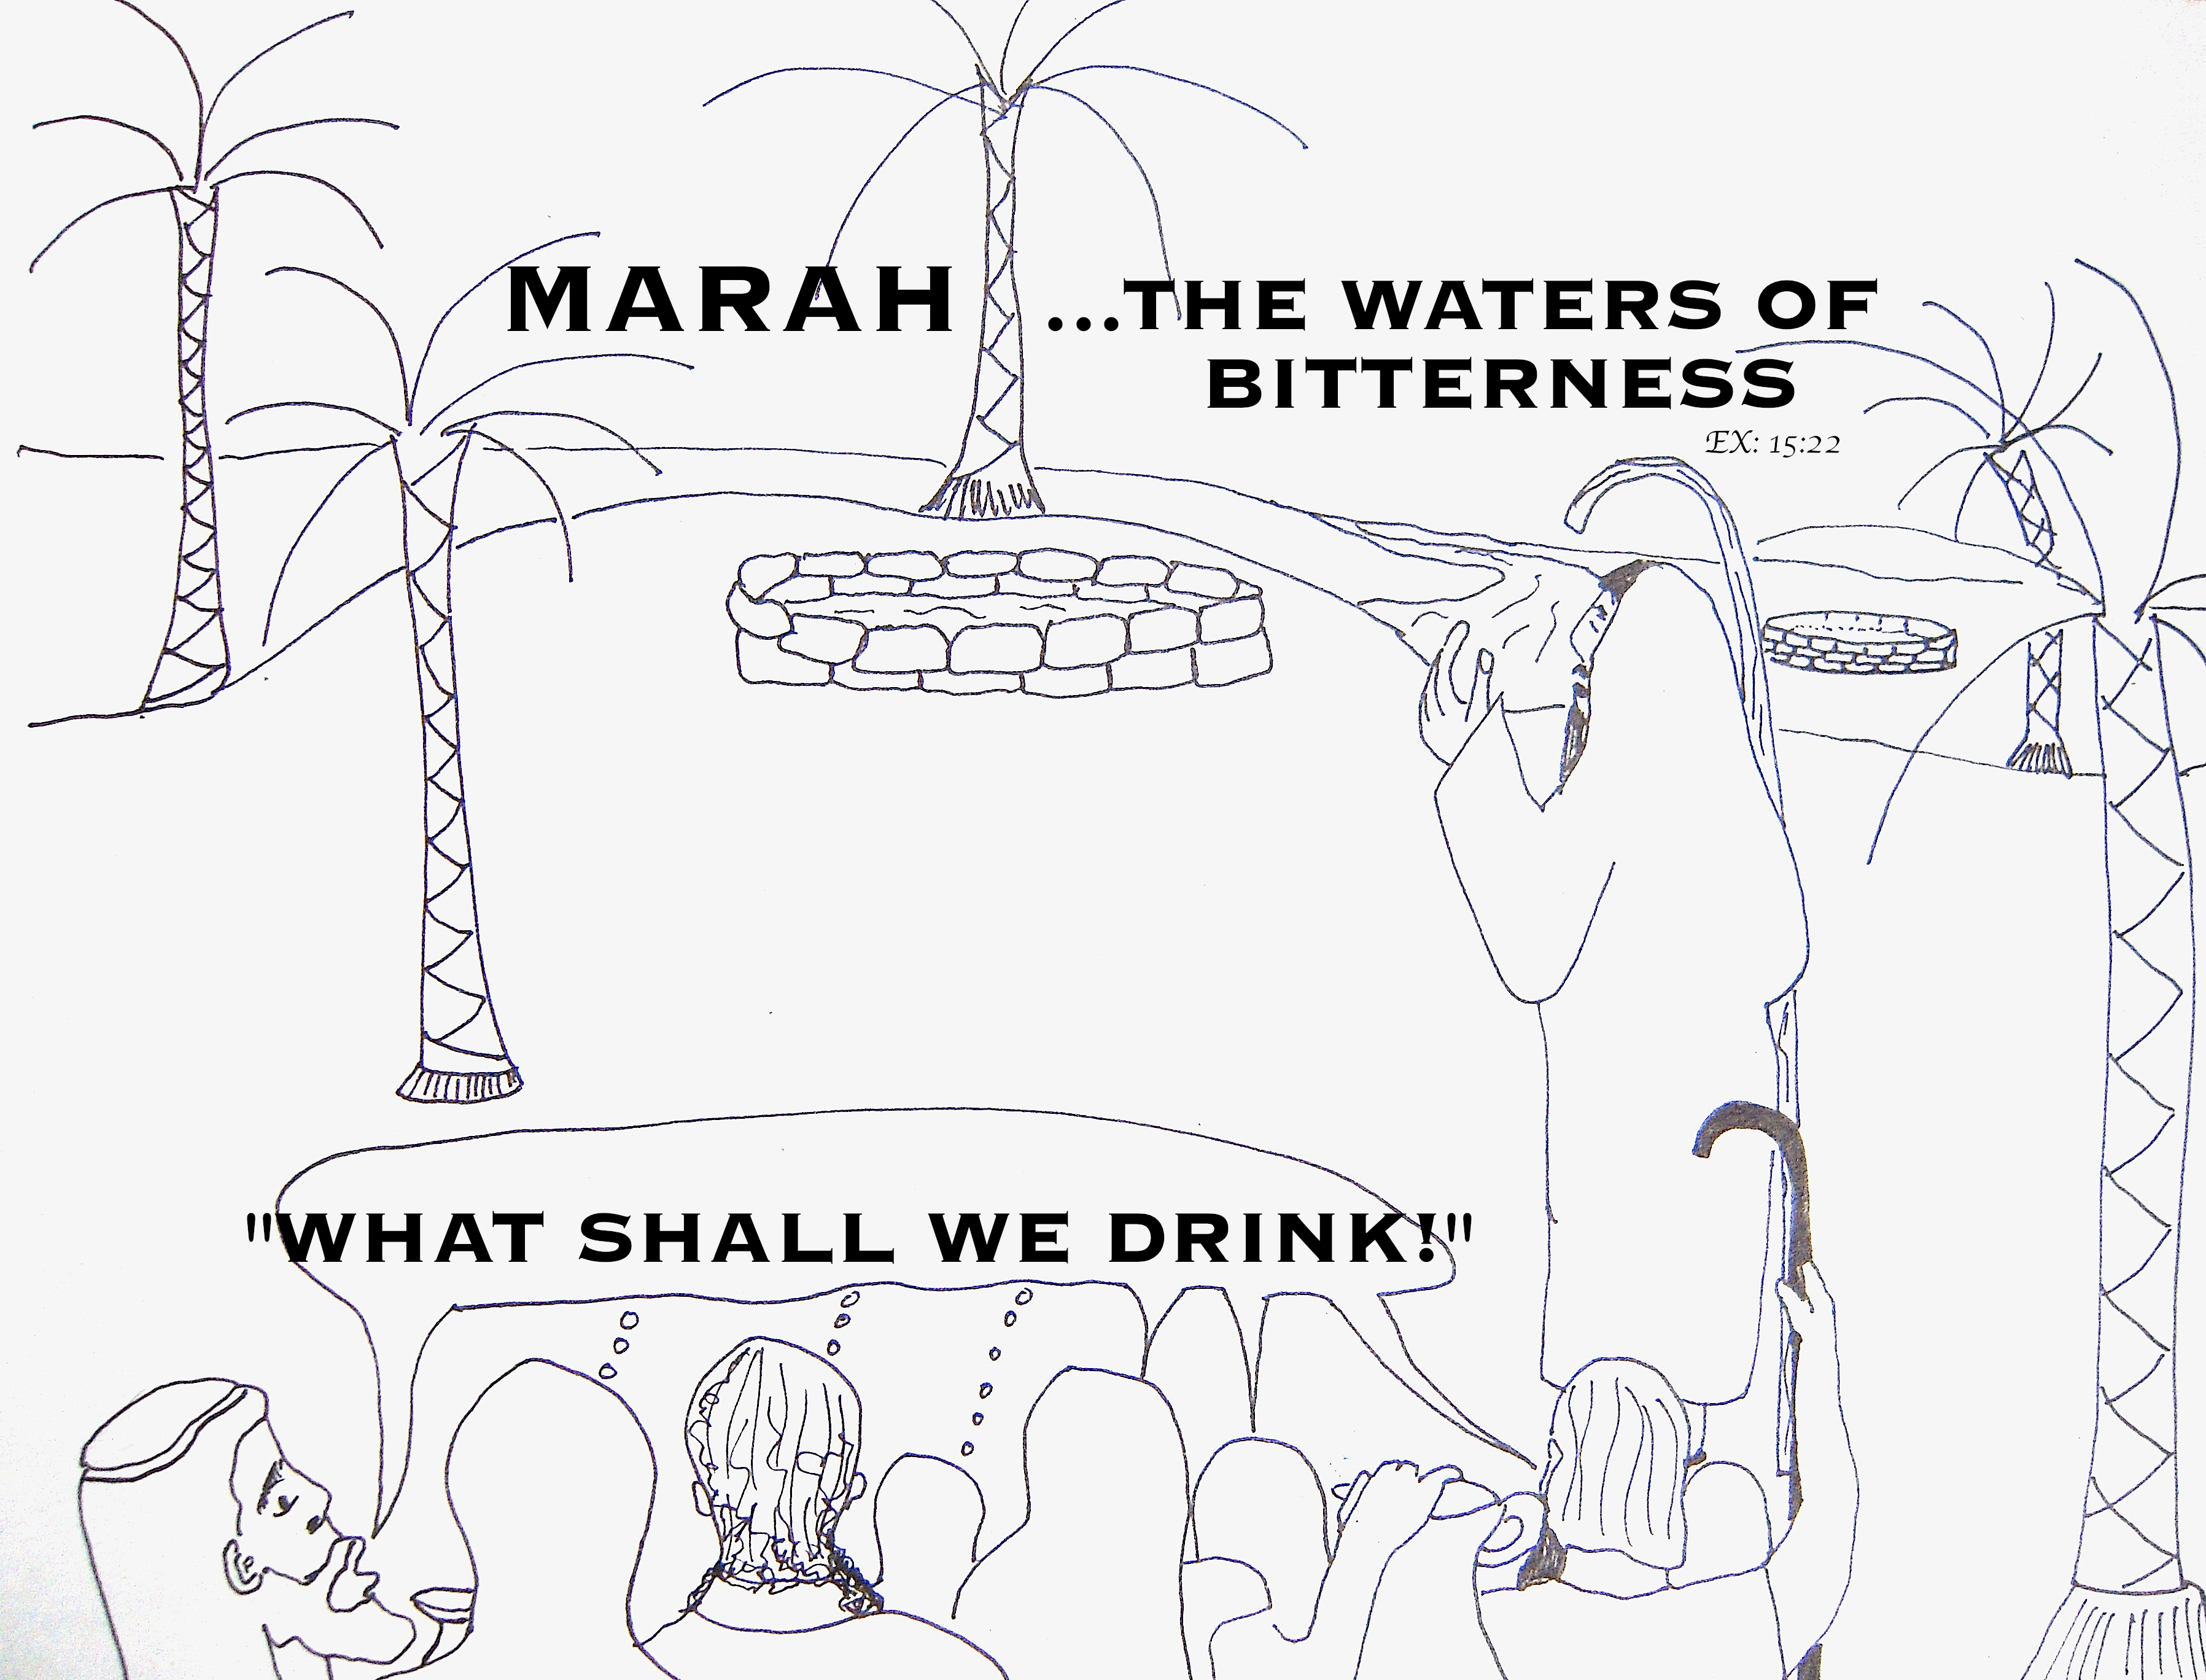 25 Palm Sunday Coloring Page Selection | FREE COLORING PAGES - Part 2